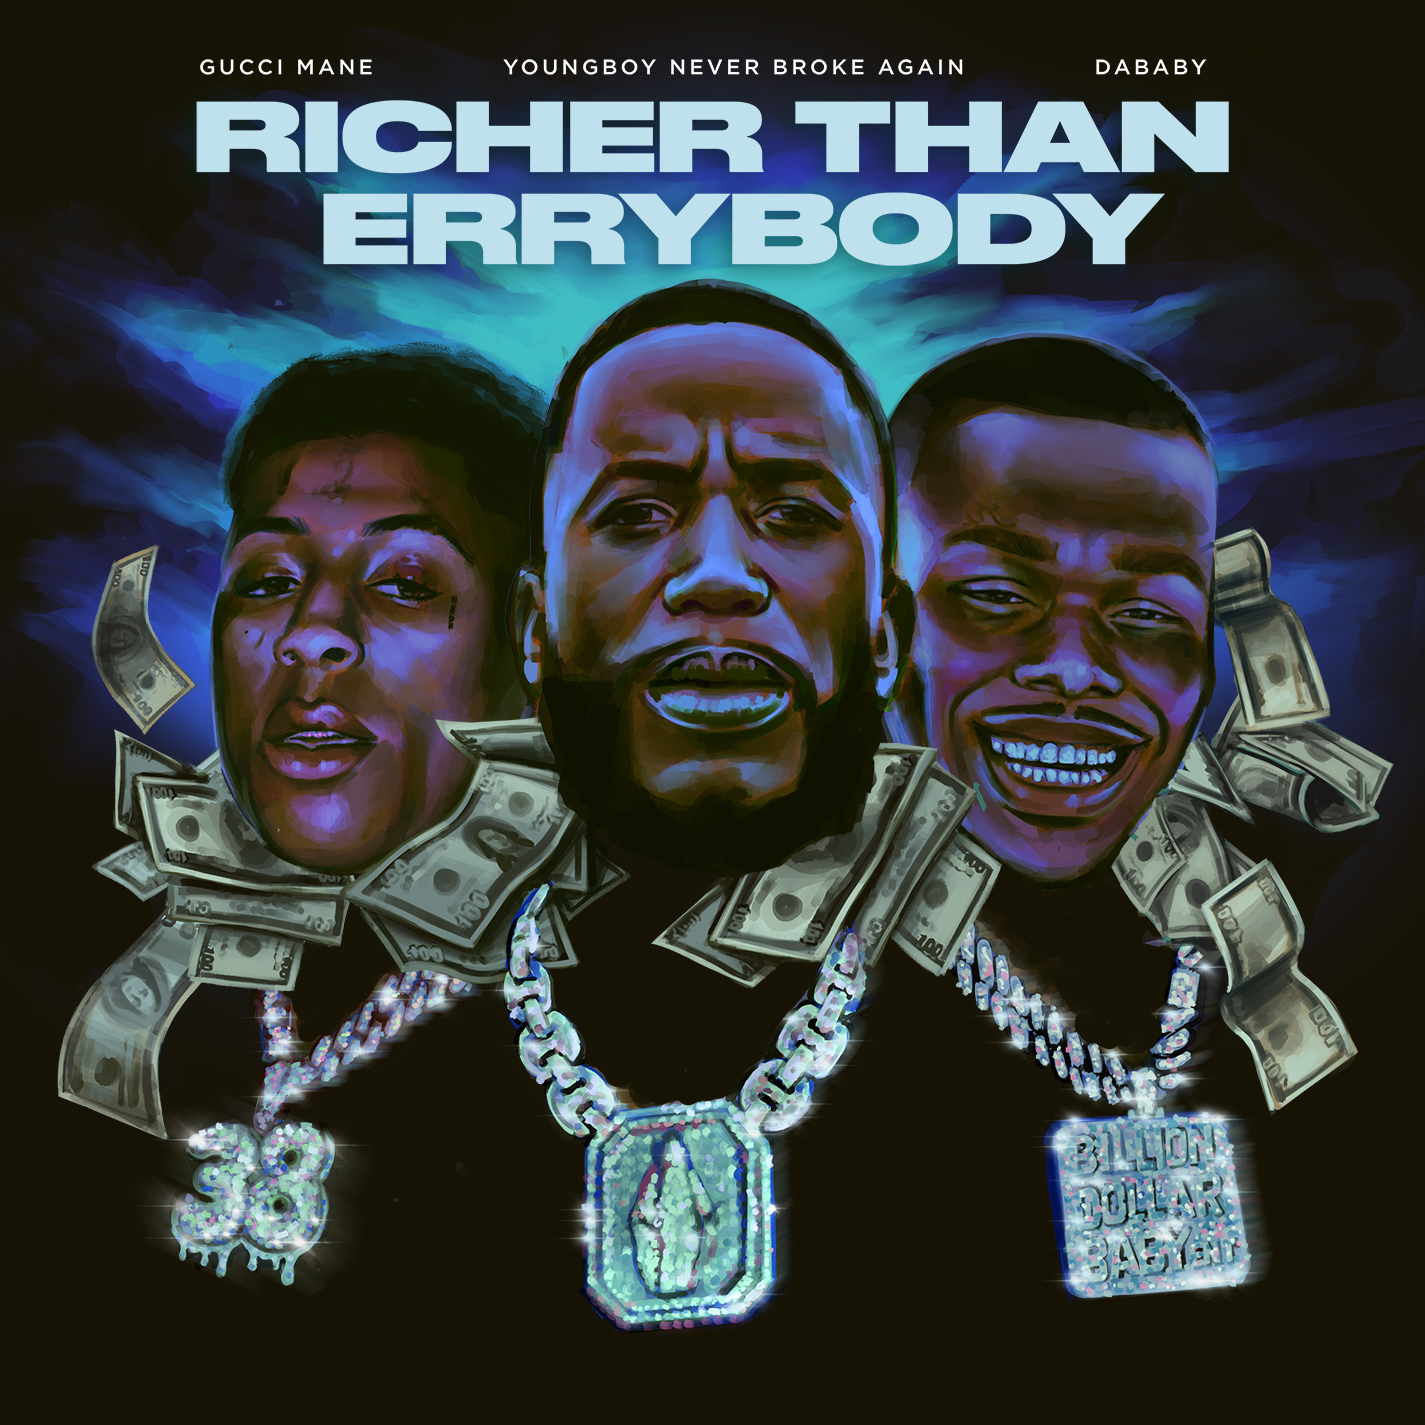 gucci mane richer than errybody